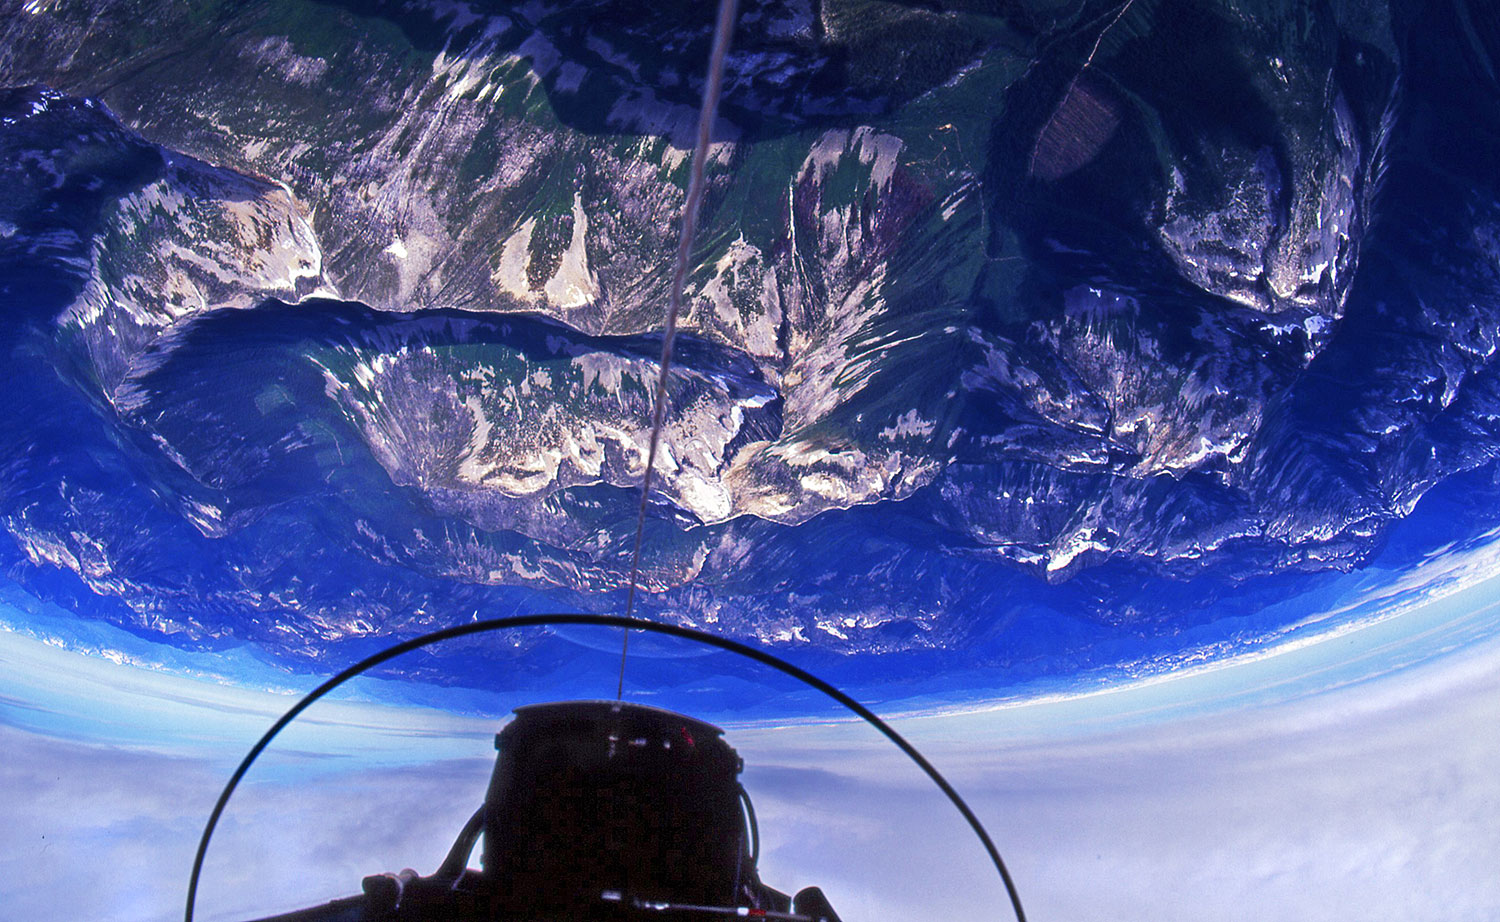 Inverted flight over the Rockies in a Lockheed T-33 jet fighter